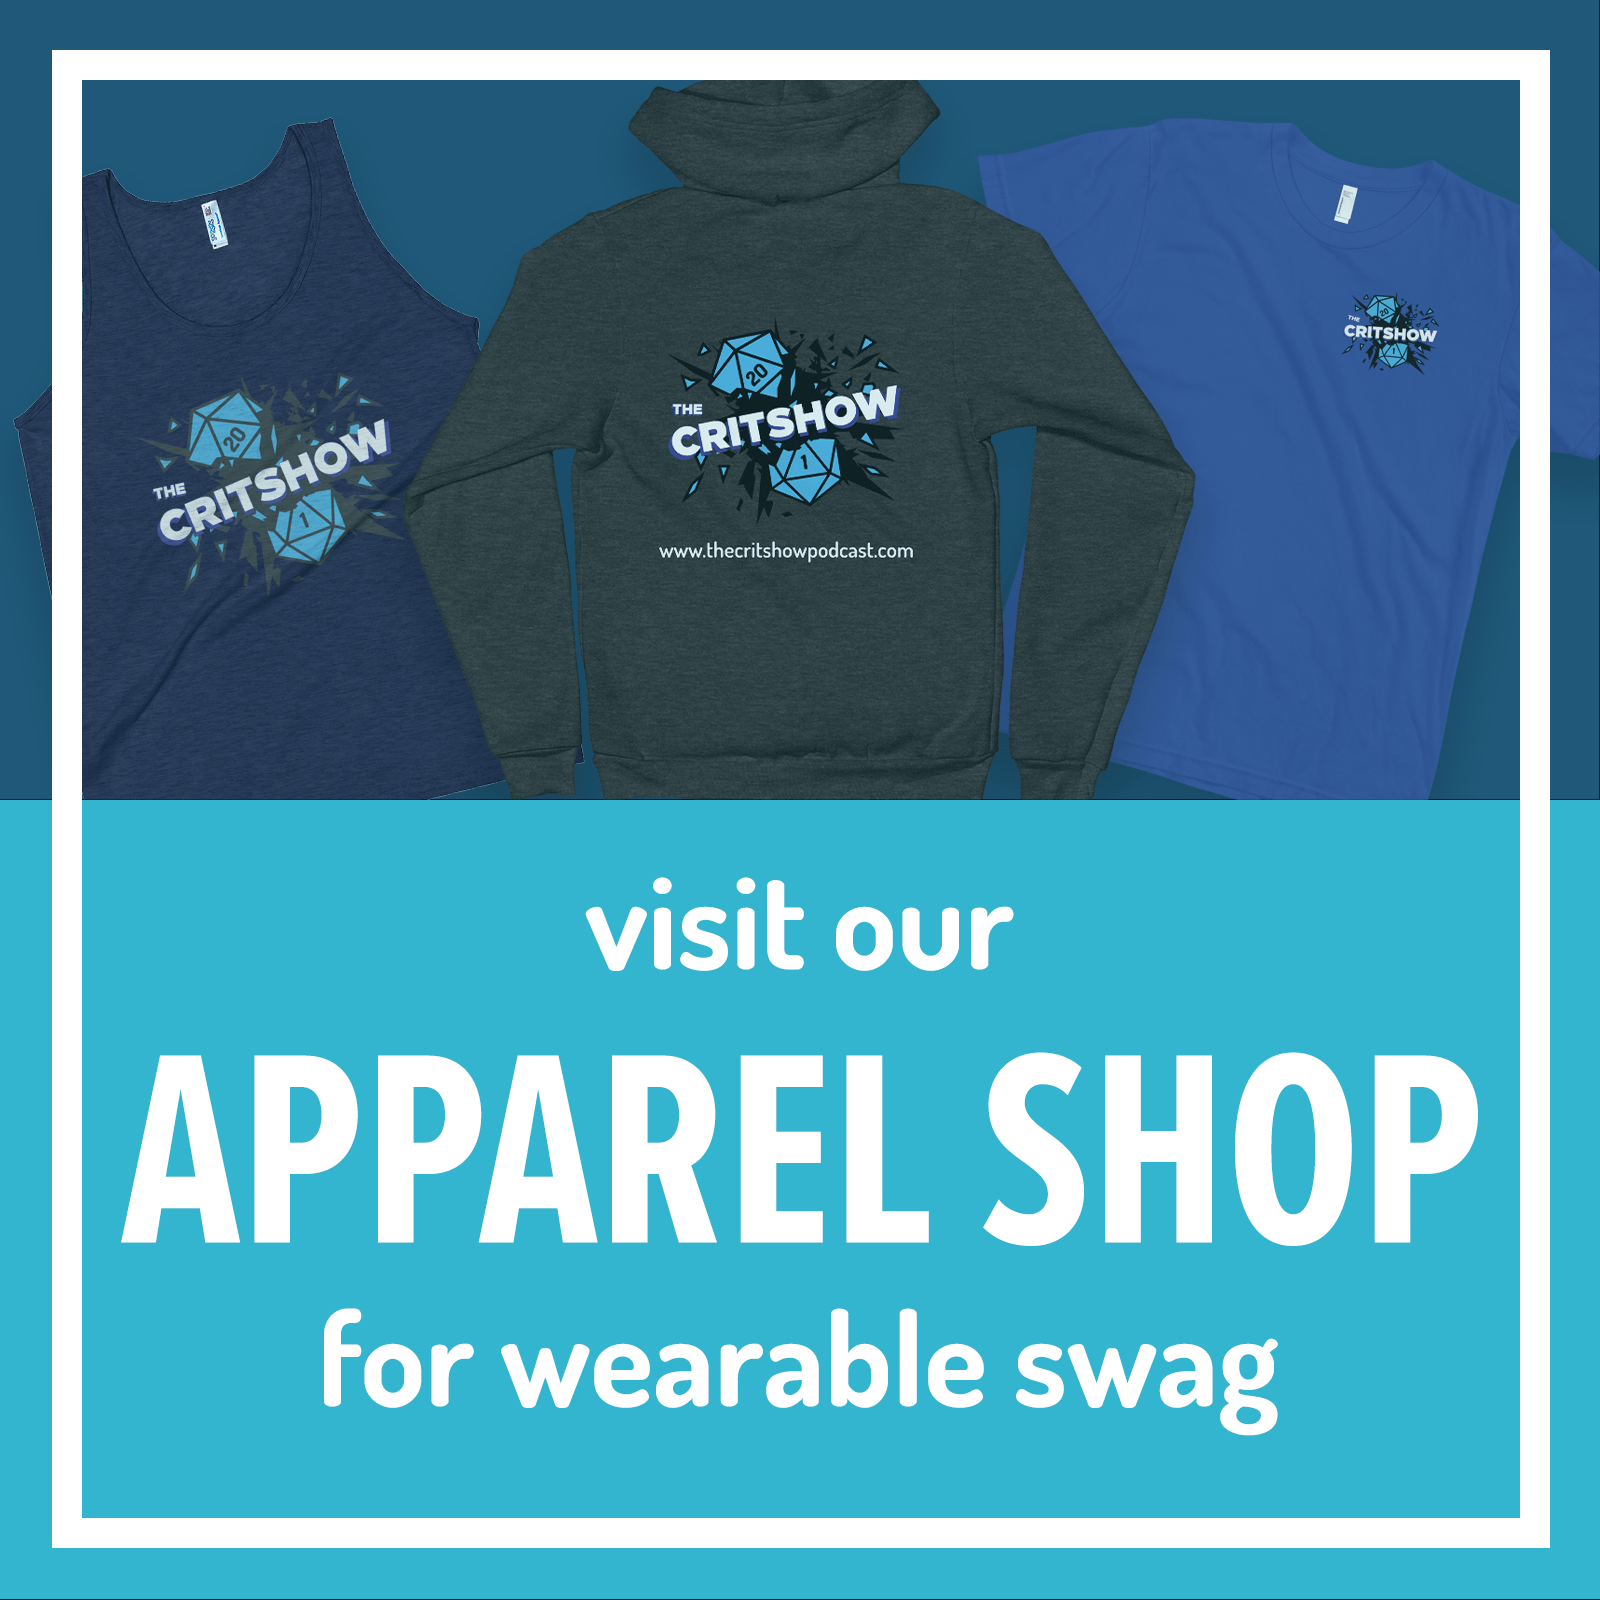 the Apparel Shop for wearable swag